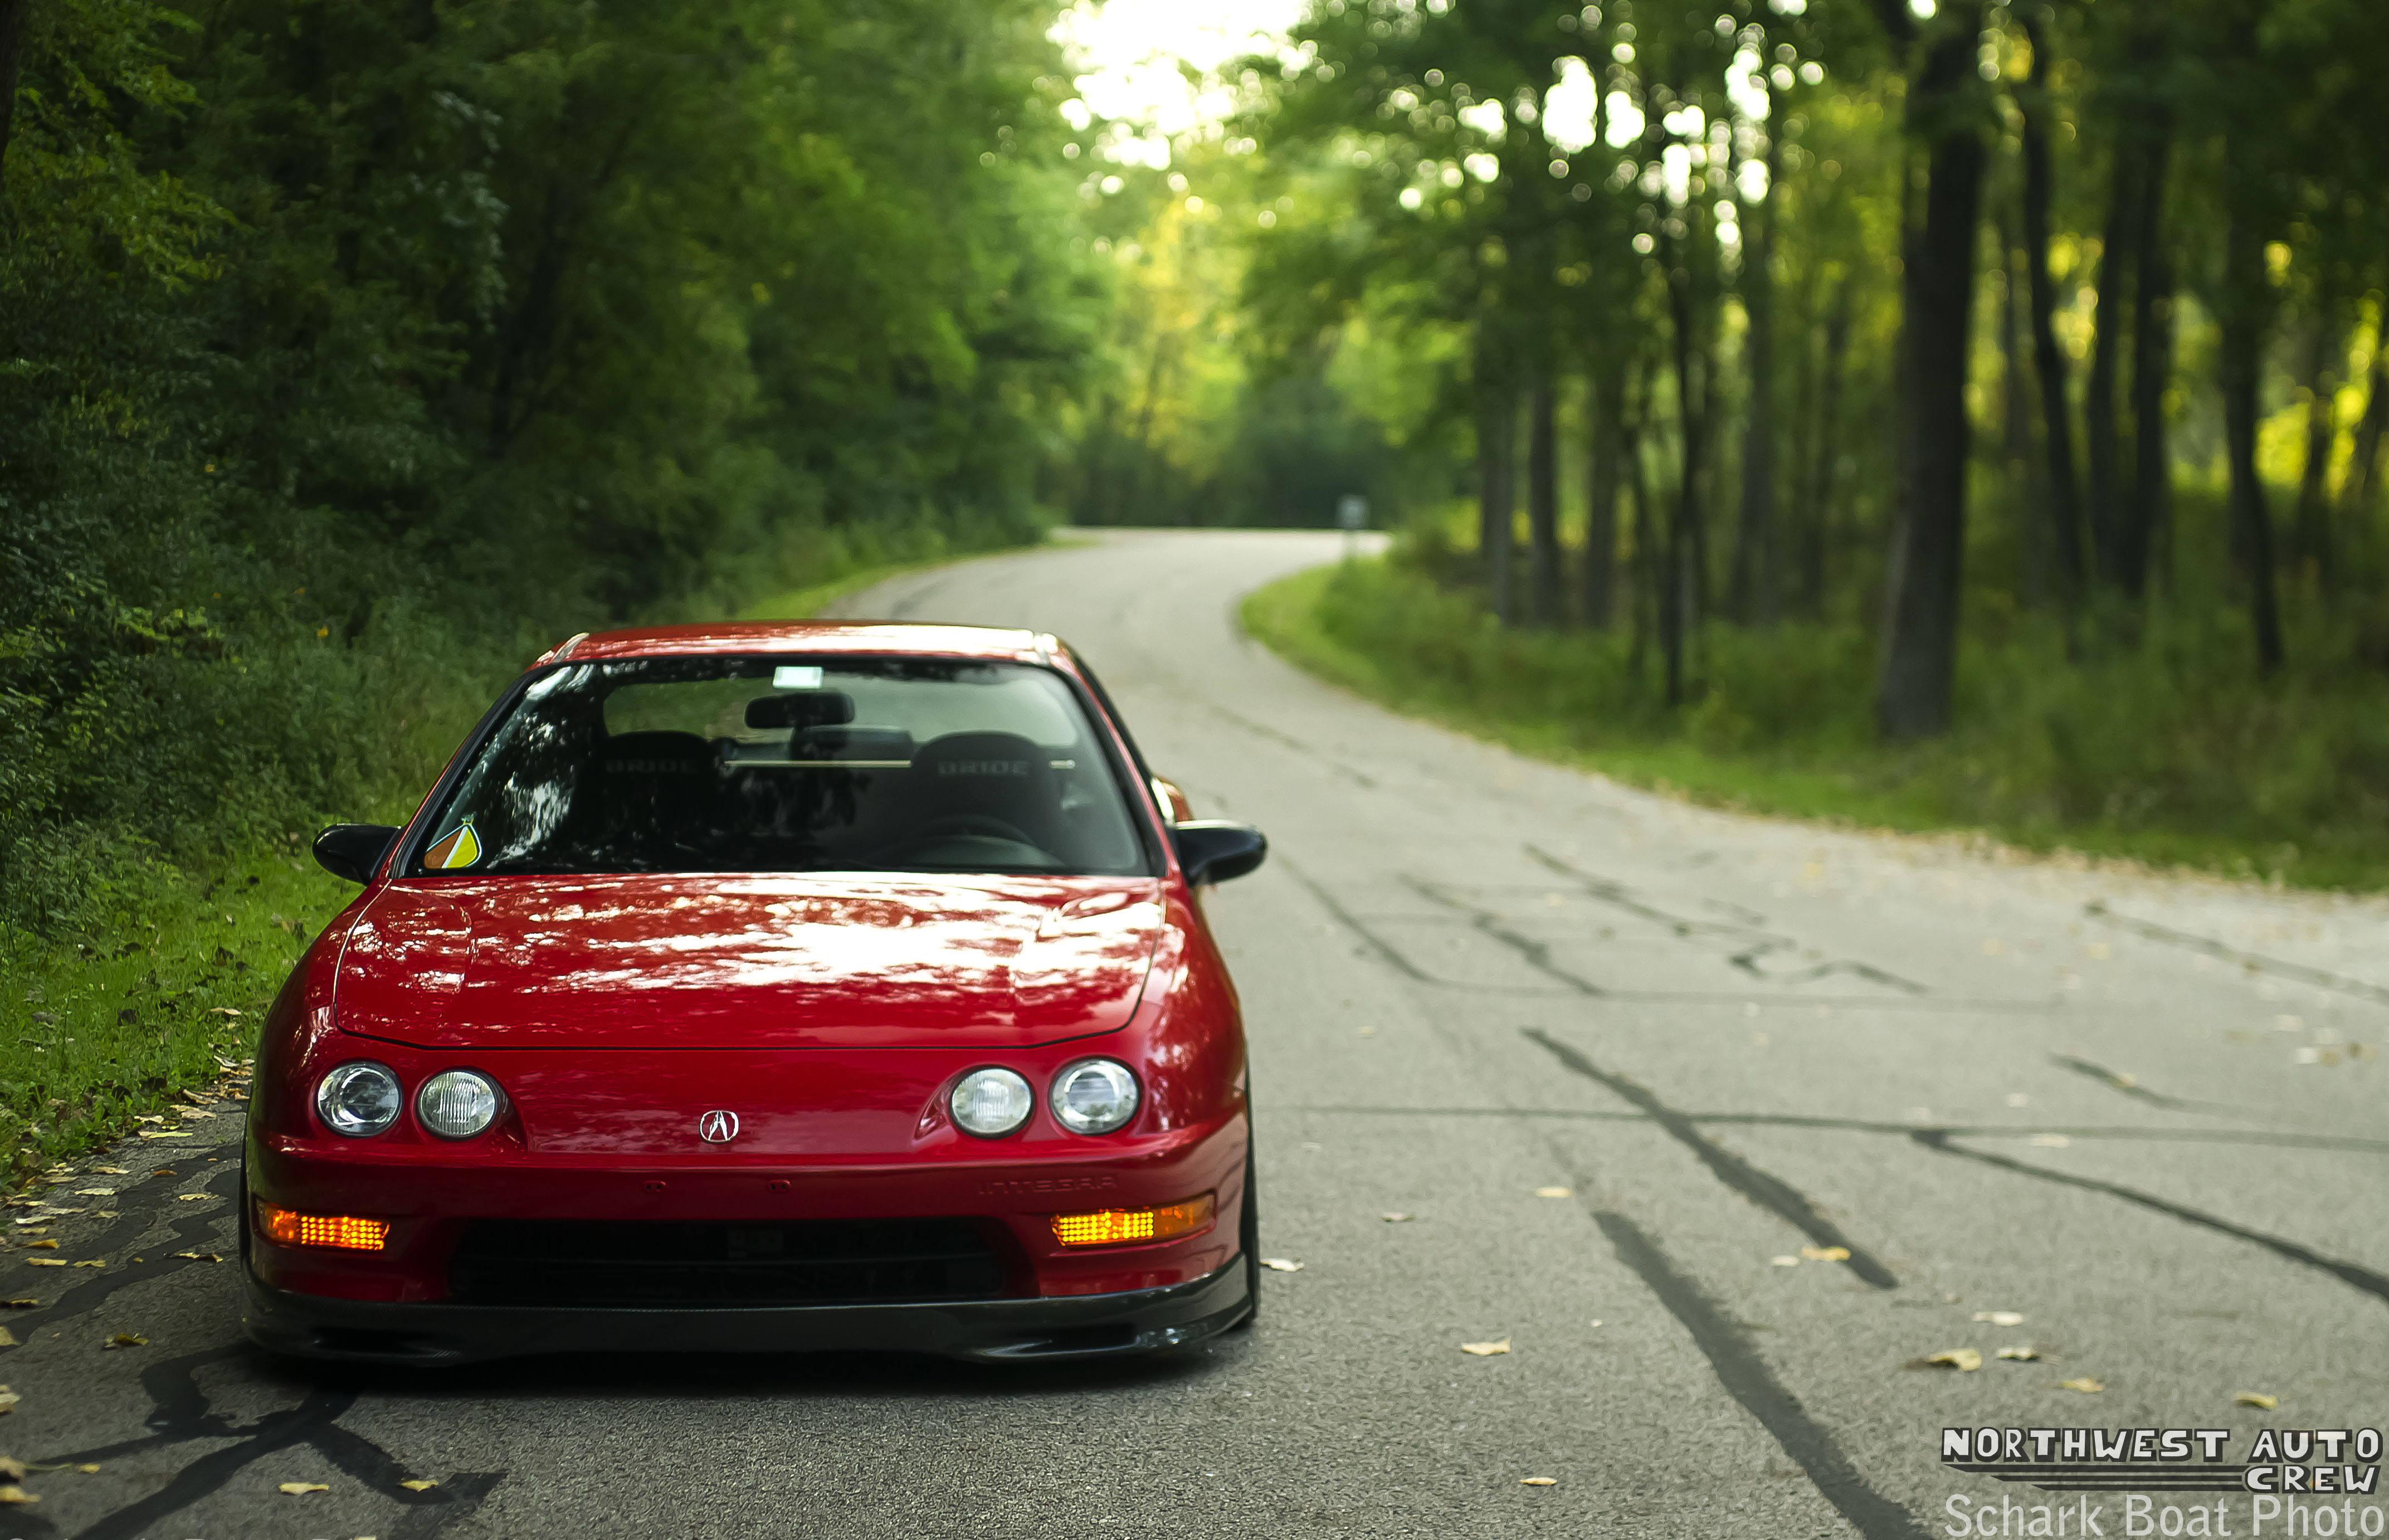 Northwest Auto Crew A Club For Car Enthusiasts From